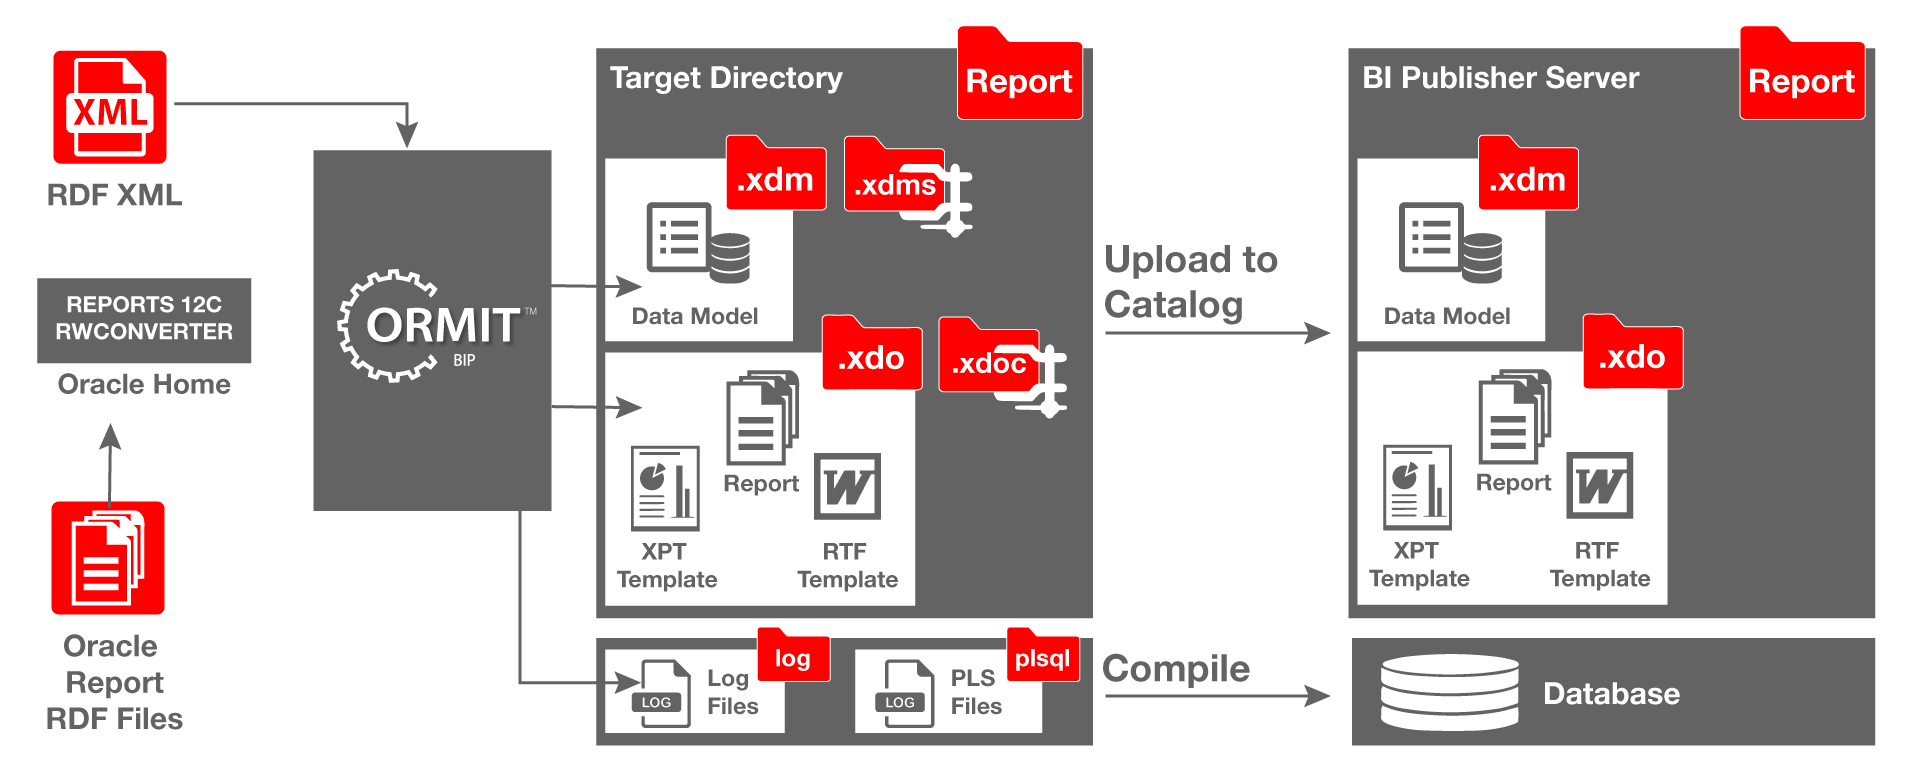 convert Oracle Reports to BI Publisher